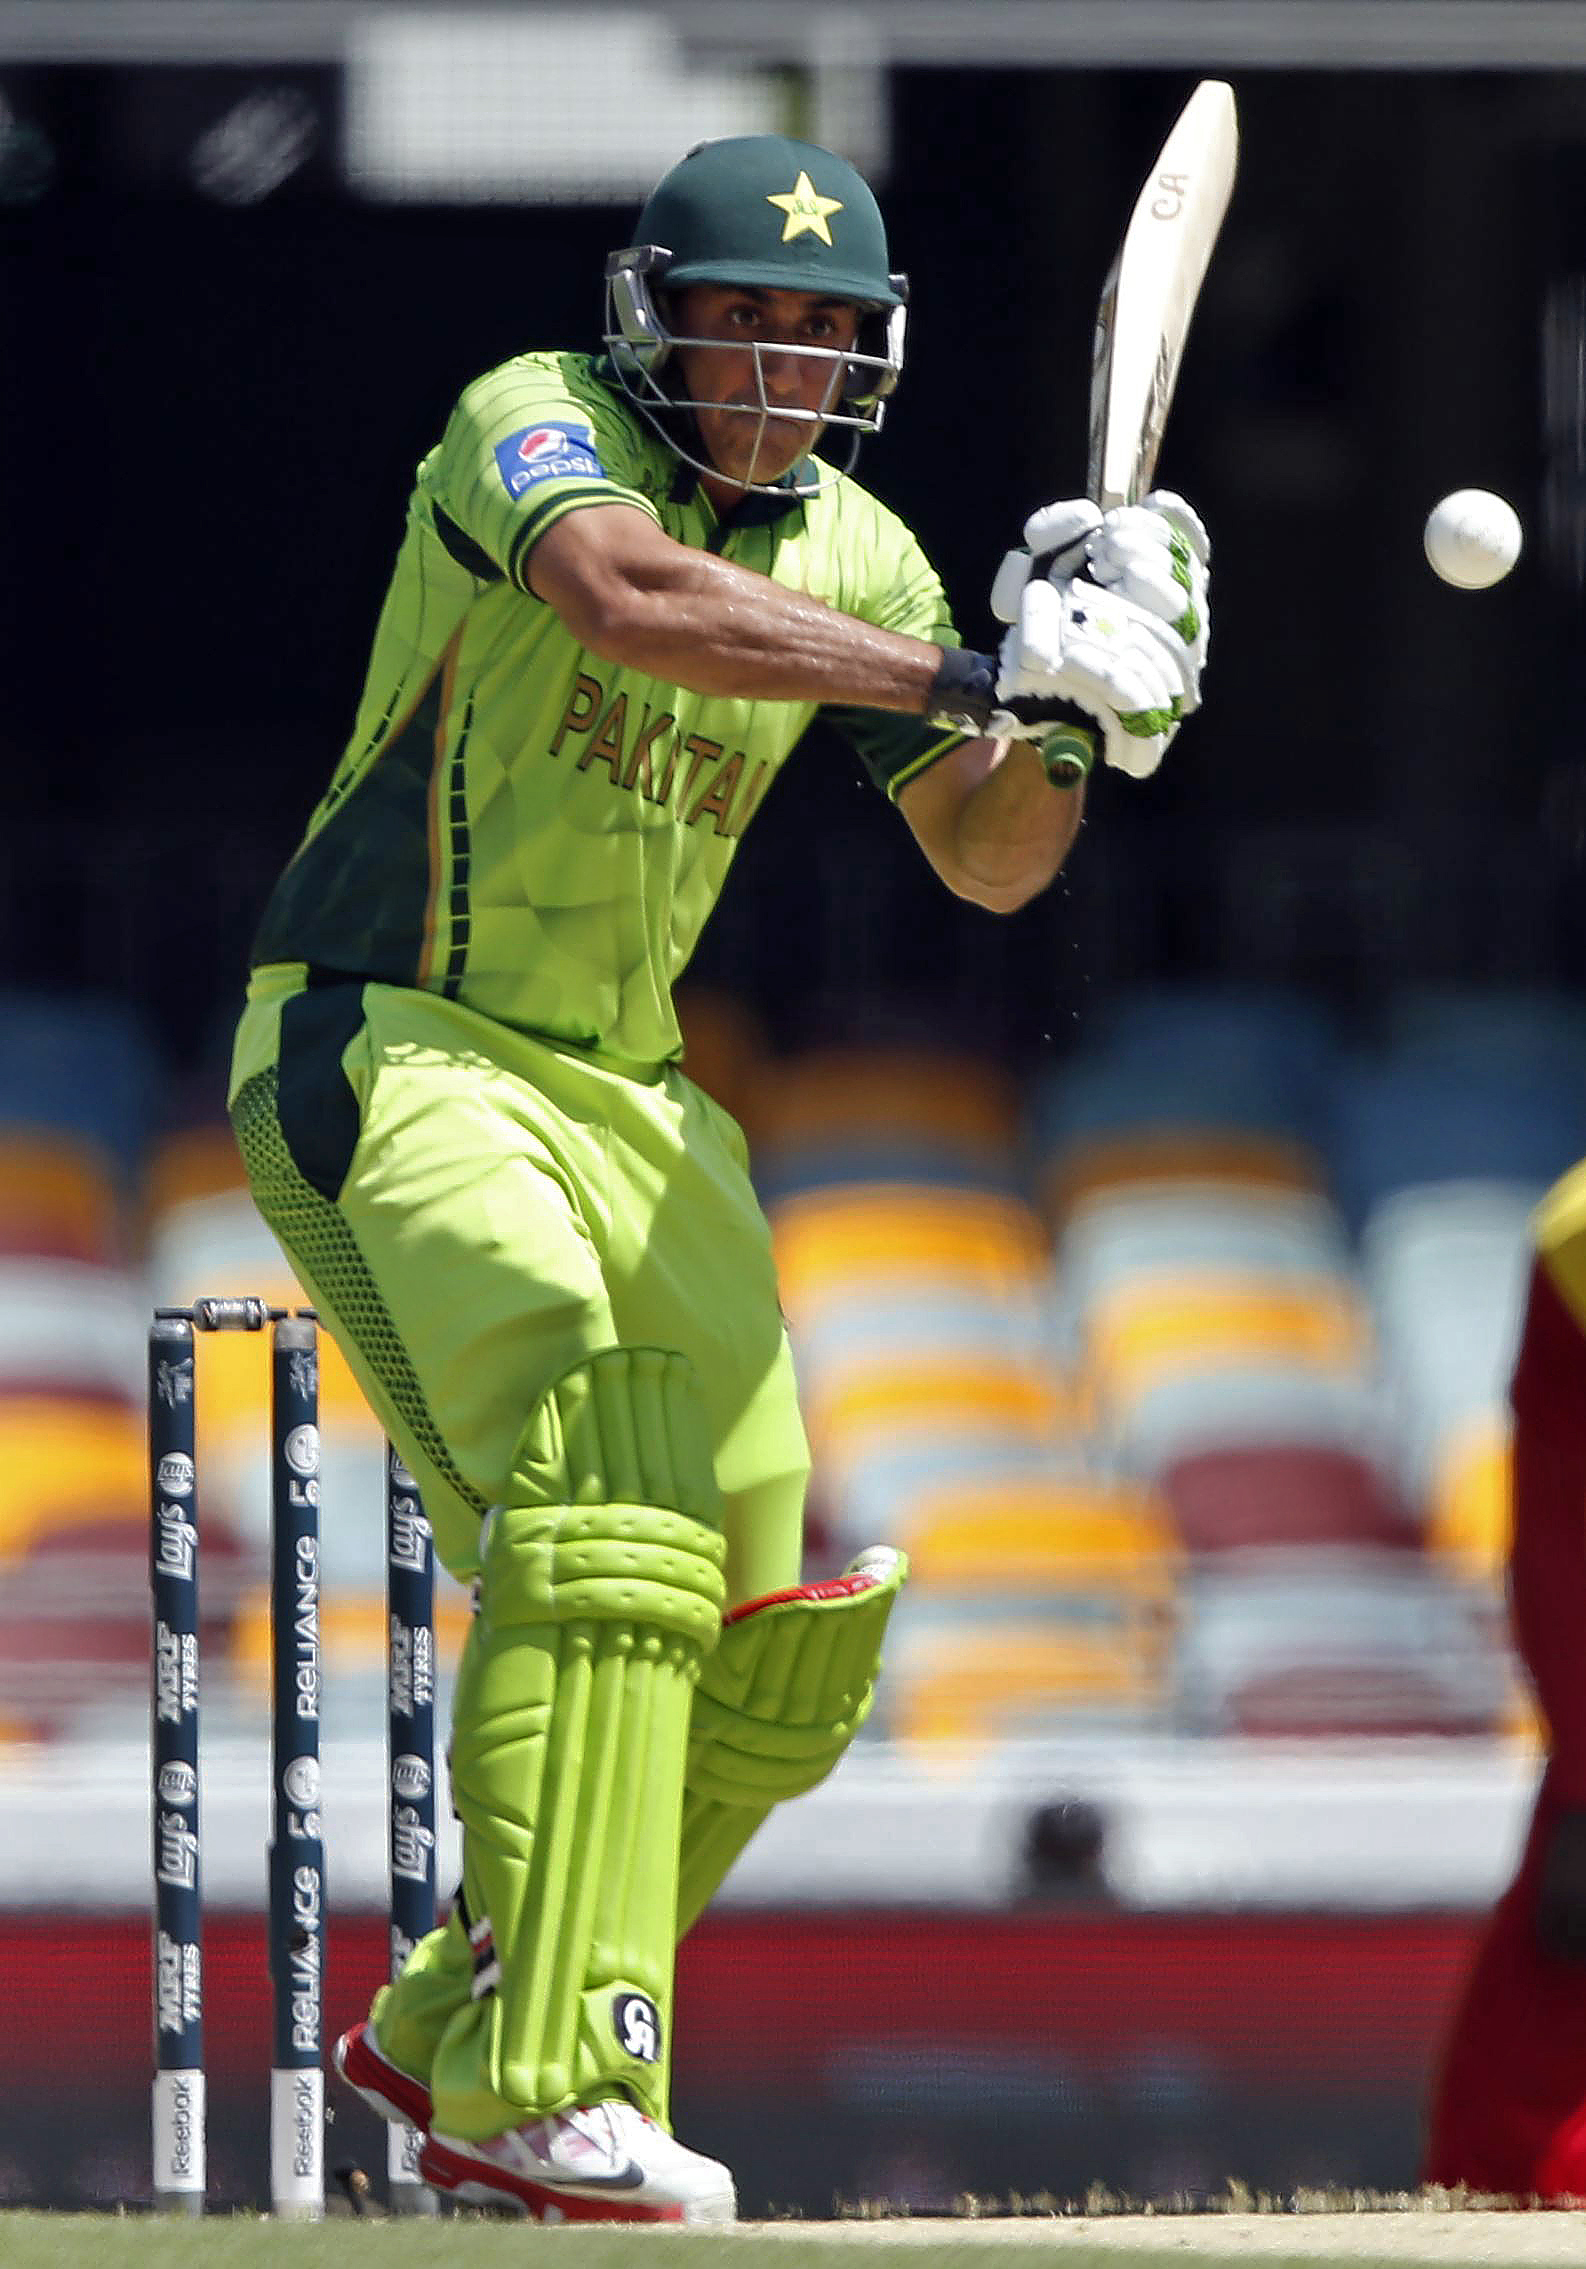 Former Pakistan cricketer Jamshed charged with bribery in